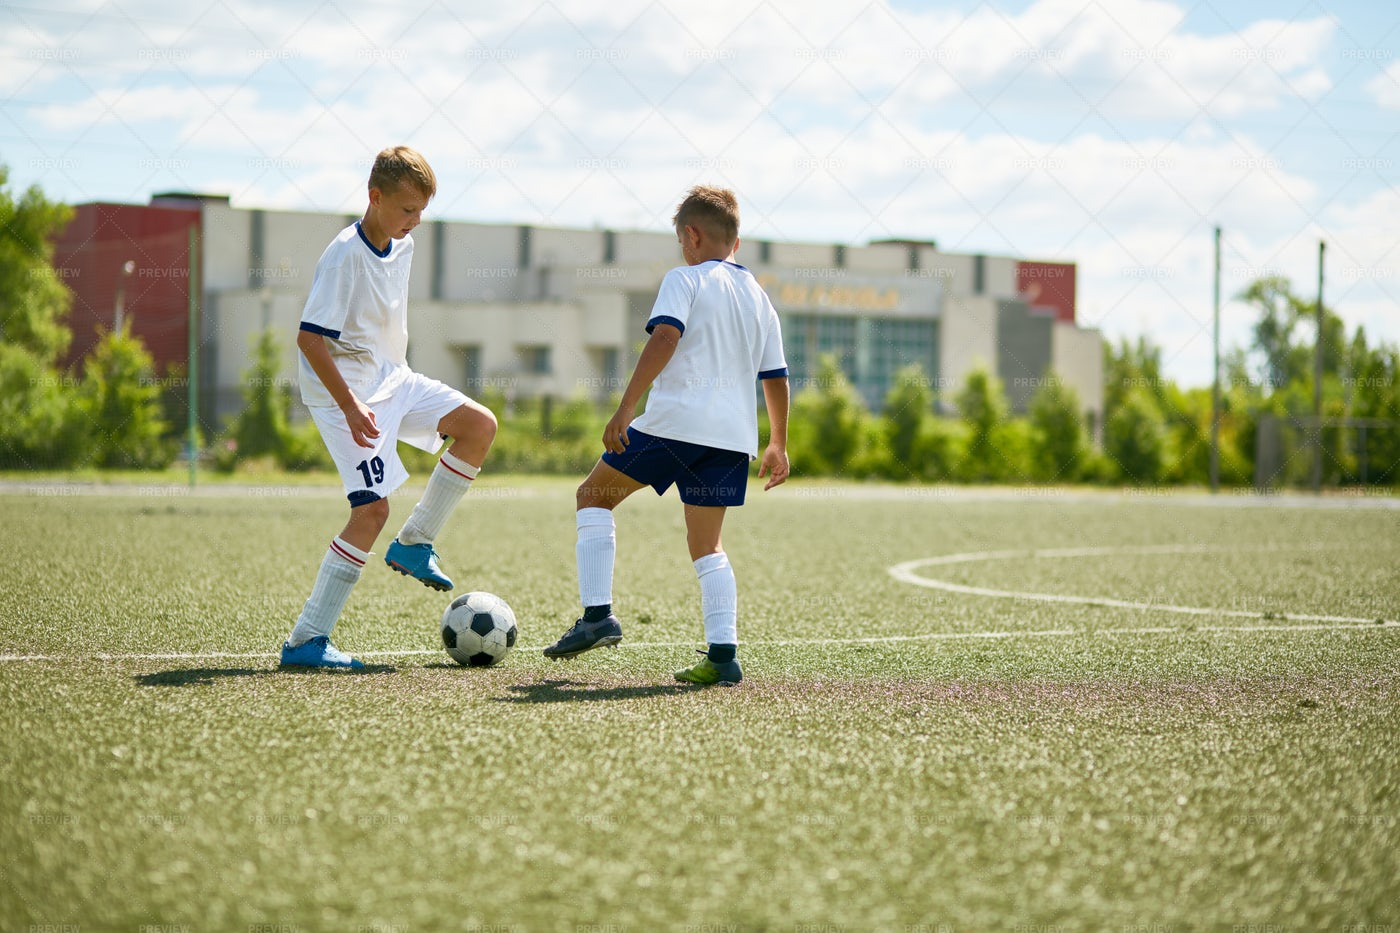 Two Boys Playing On  Football Field: Stock Photos